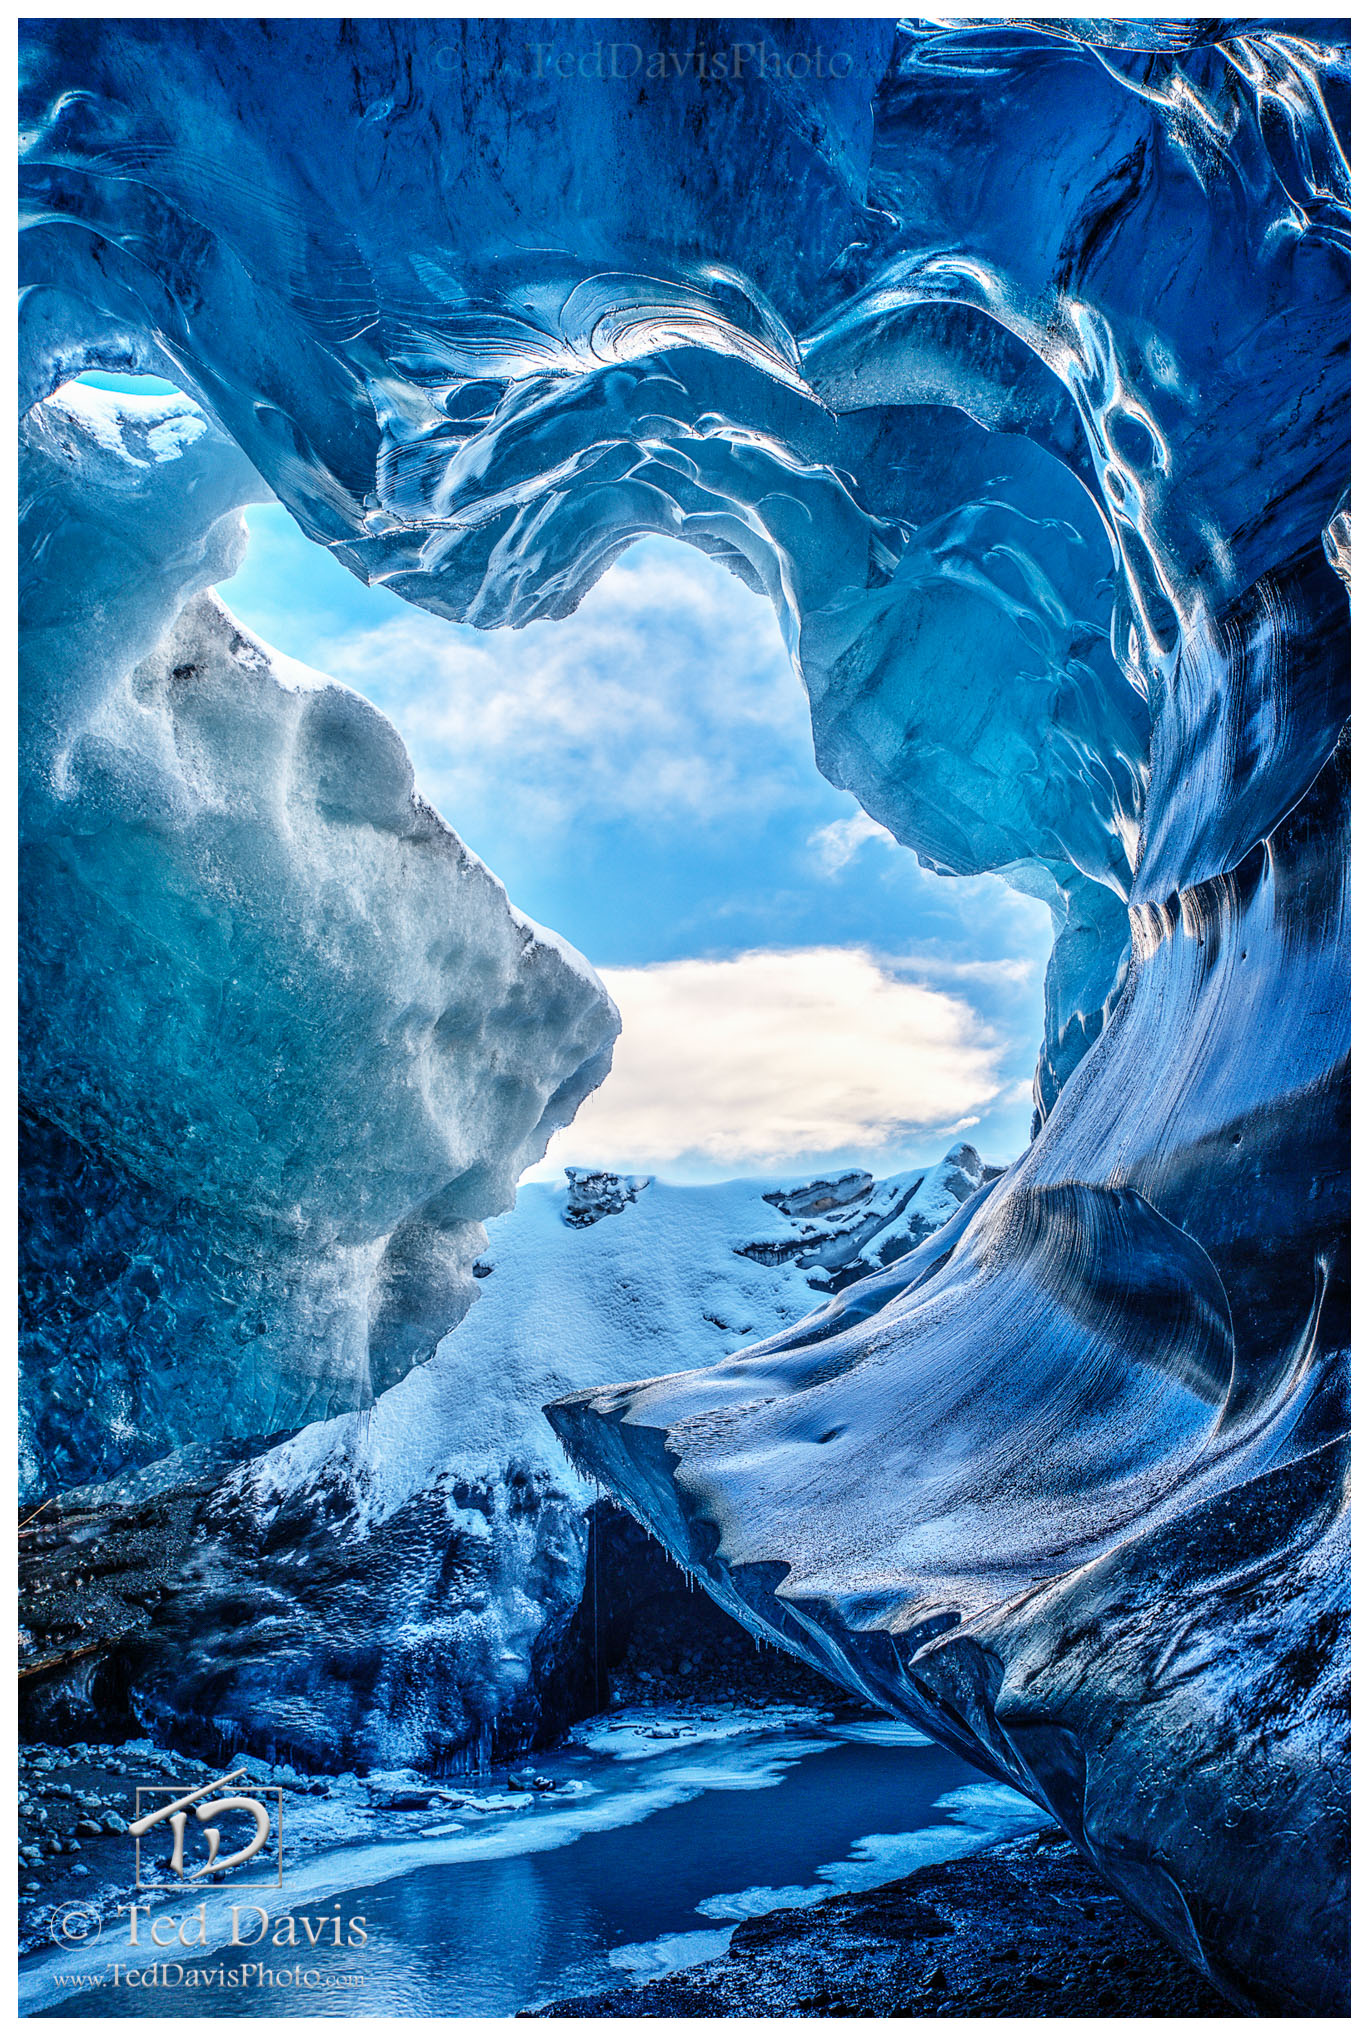 archeus, crystal cave, ice, cave, iceland, blue ice, snow, water, flows, nature, force, sky, primal force, growth, photo